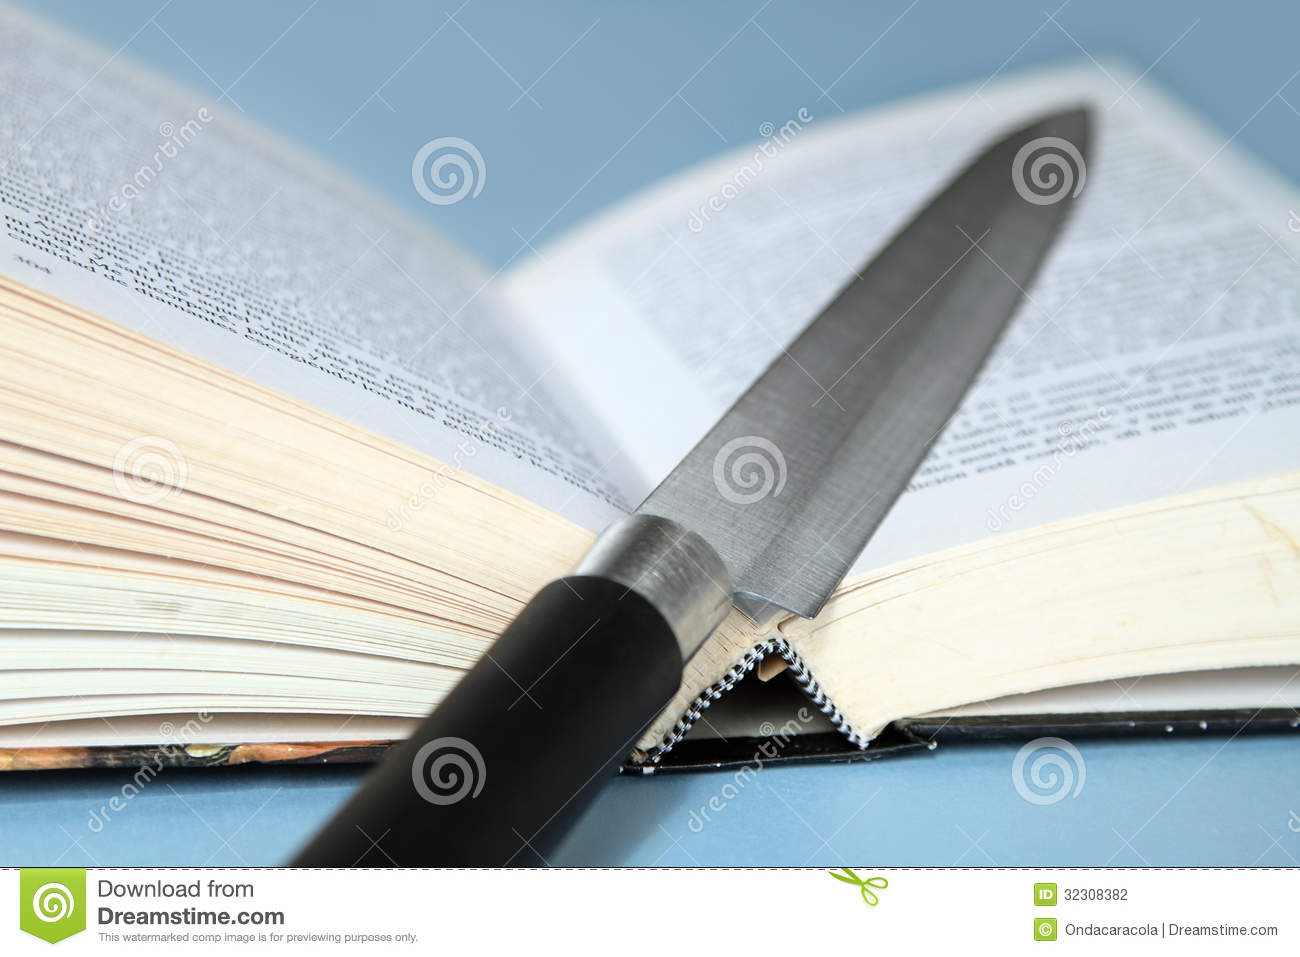 Knife and book